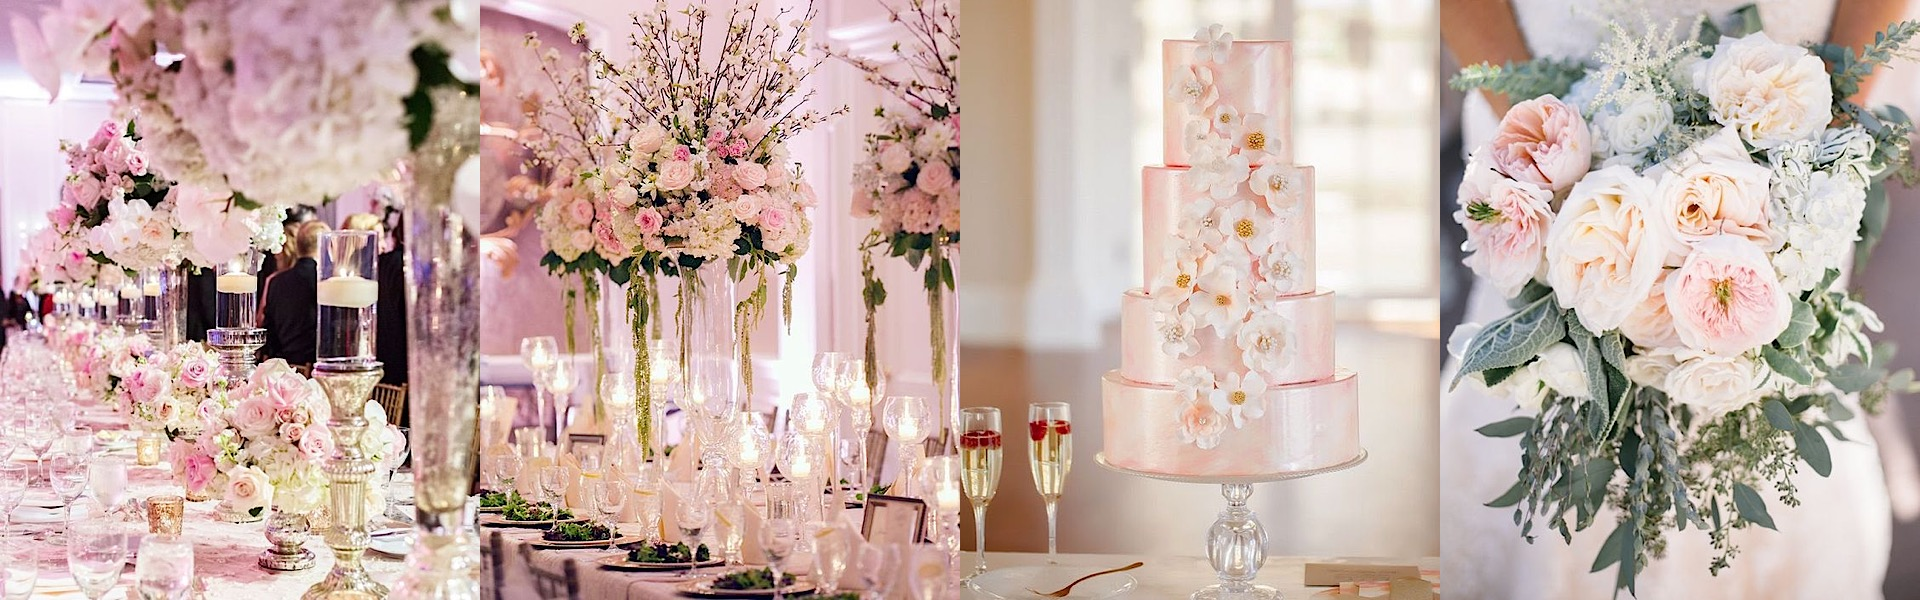 25 Most Romantic Pink Wedding Ideas That Will Make You Blush